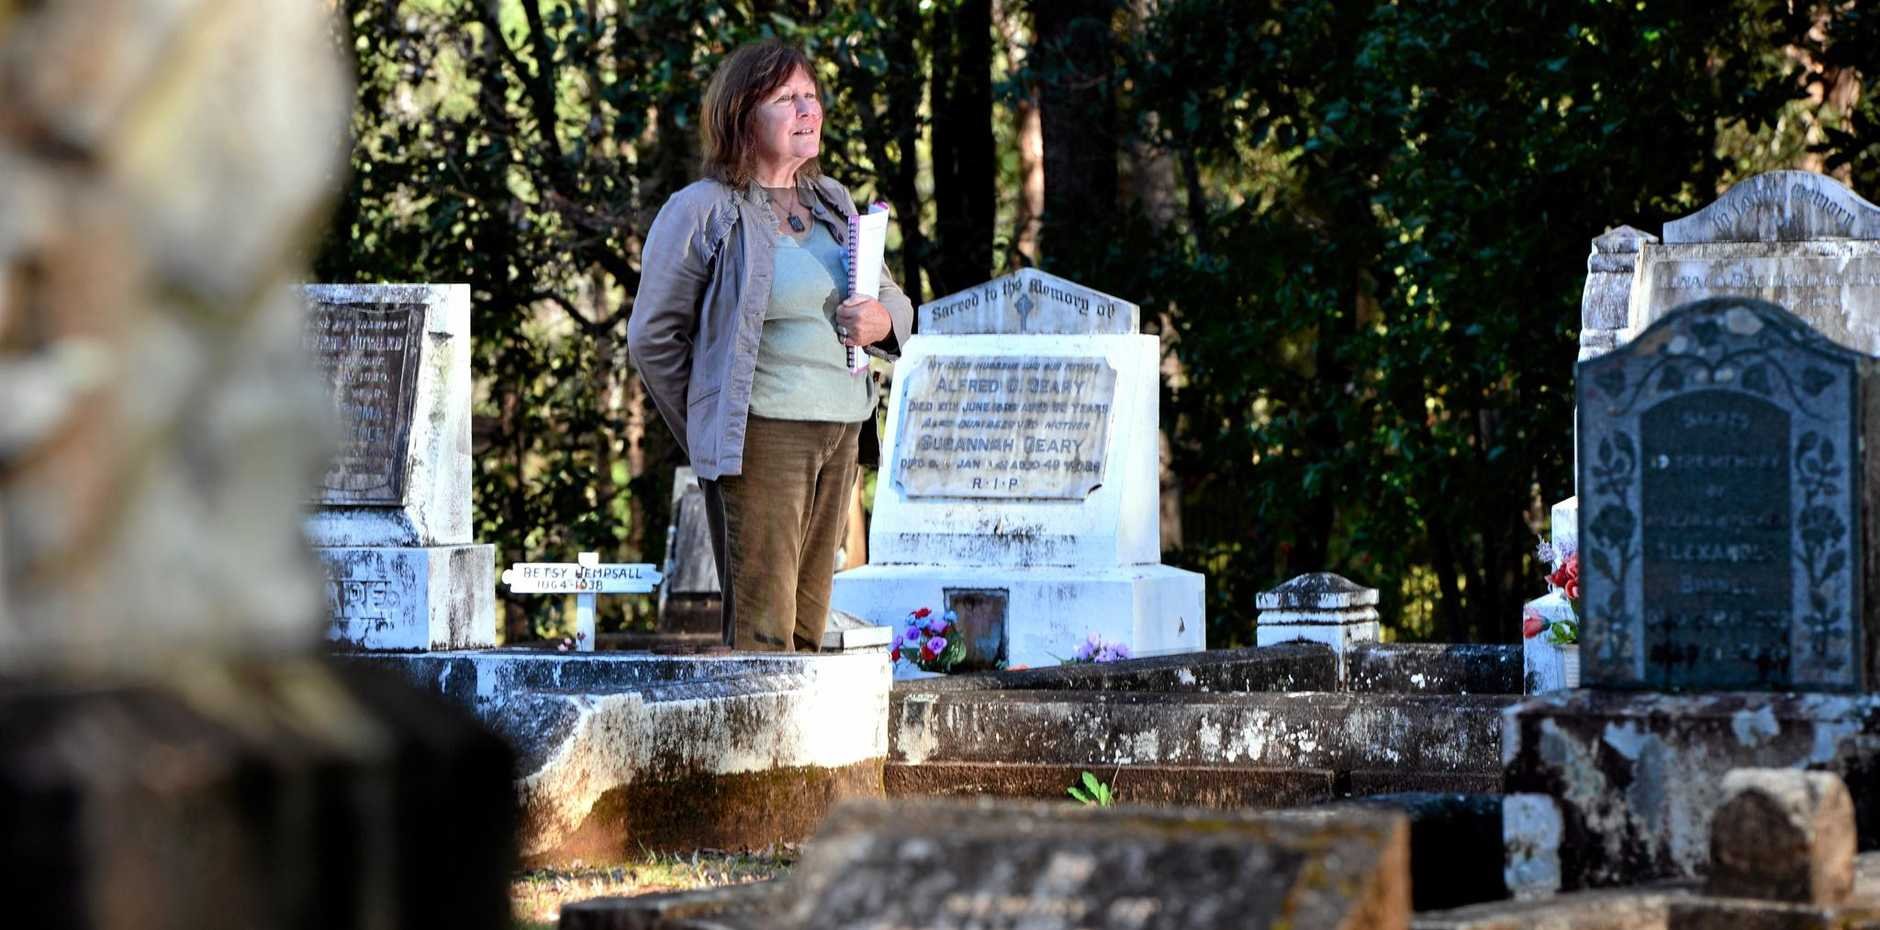 HISTORY LESSON: Alison Napier will conduct Pomona Cemetery walks for the public to share stories of people buried there.